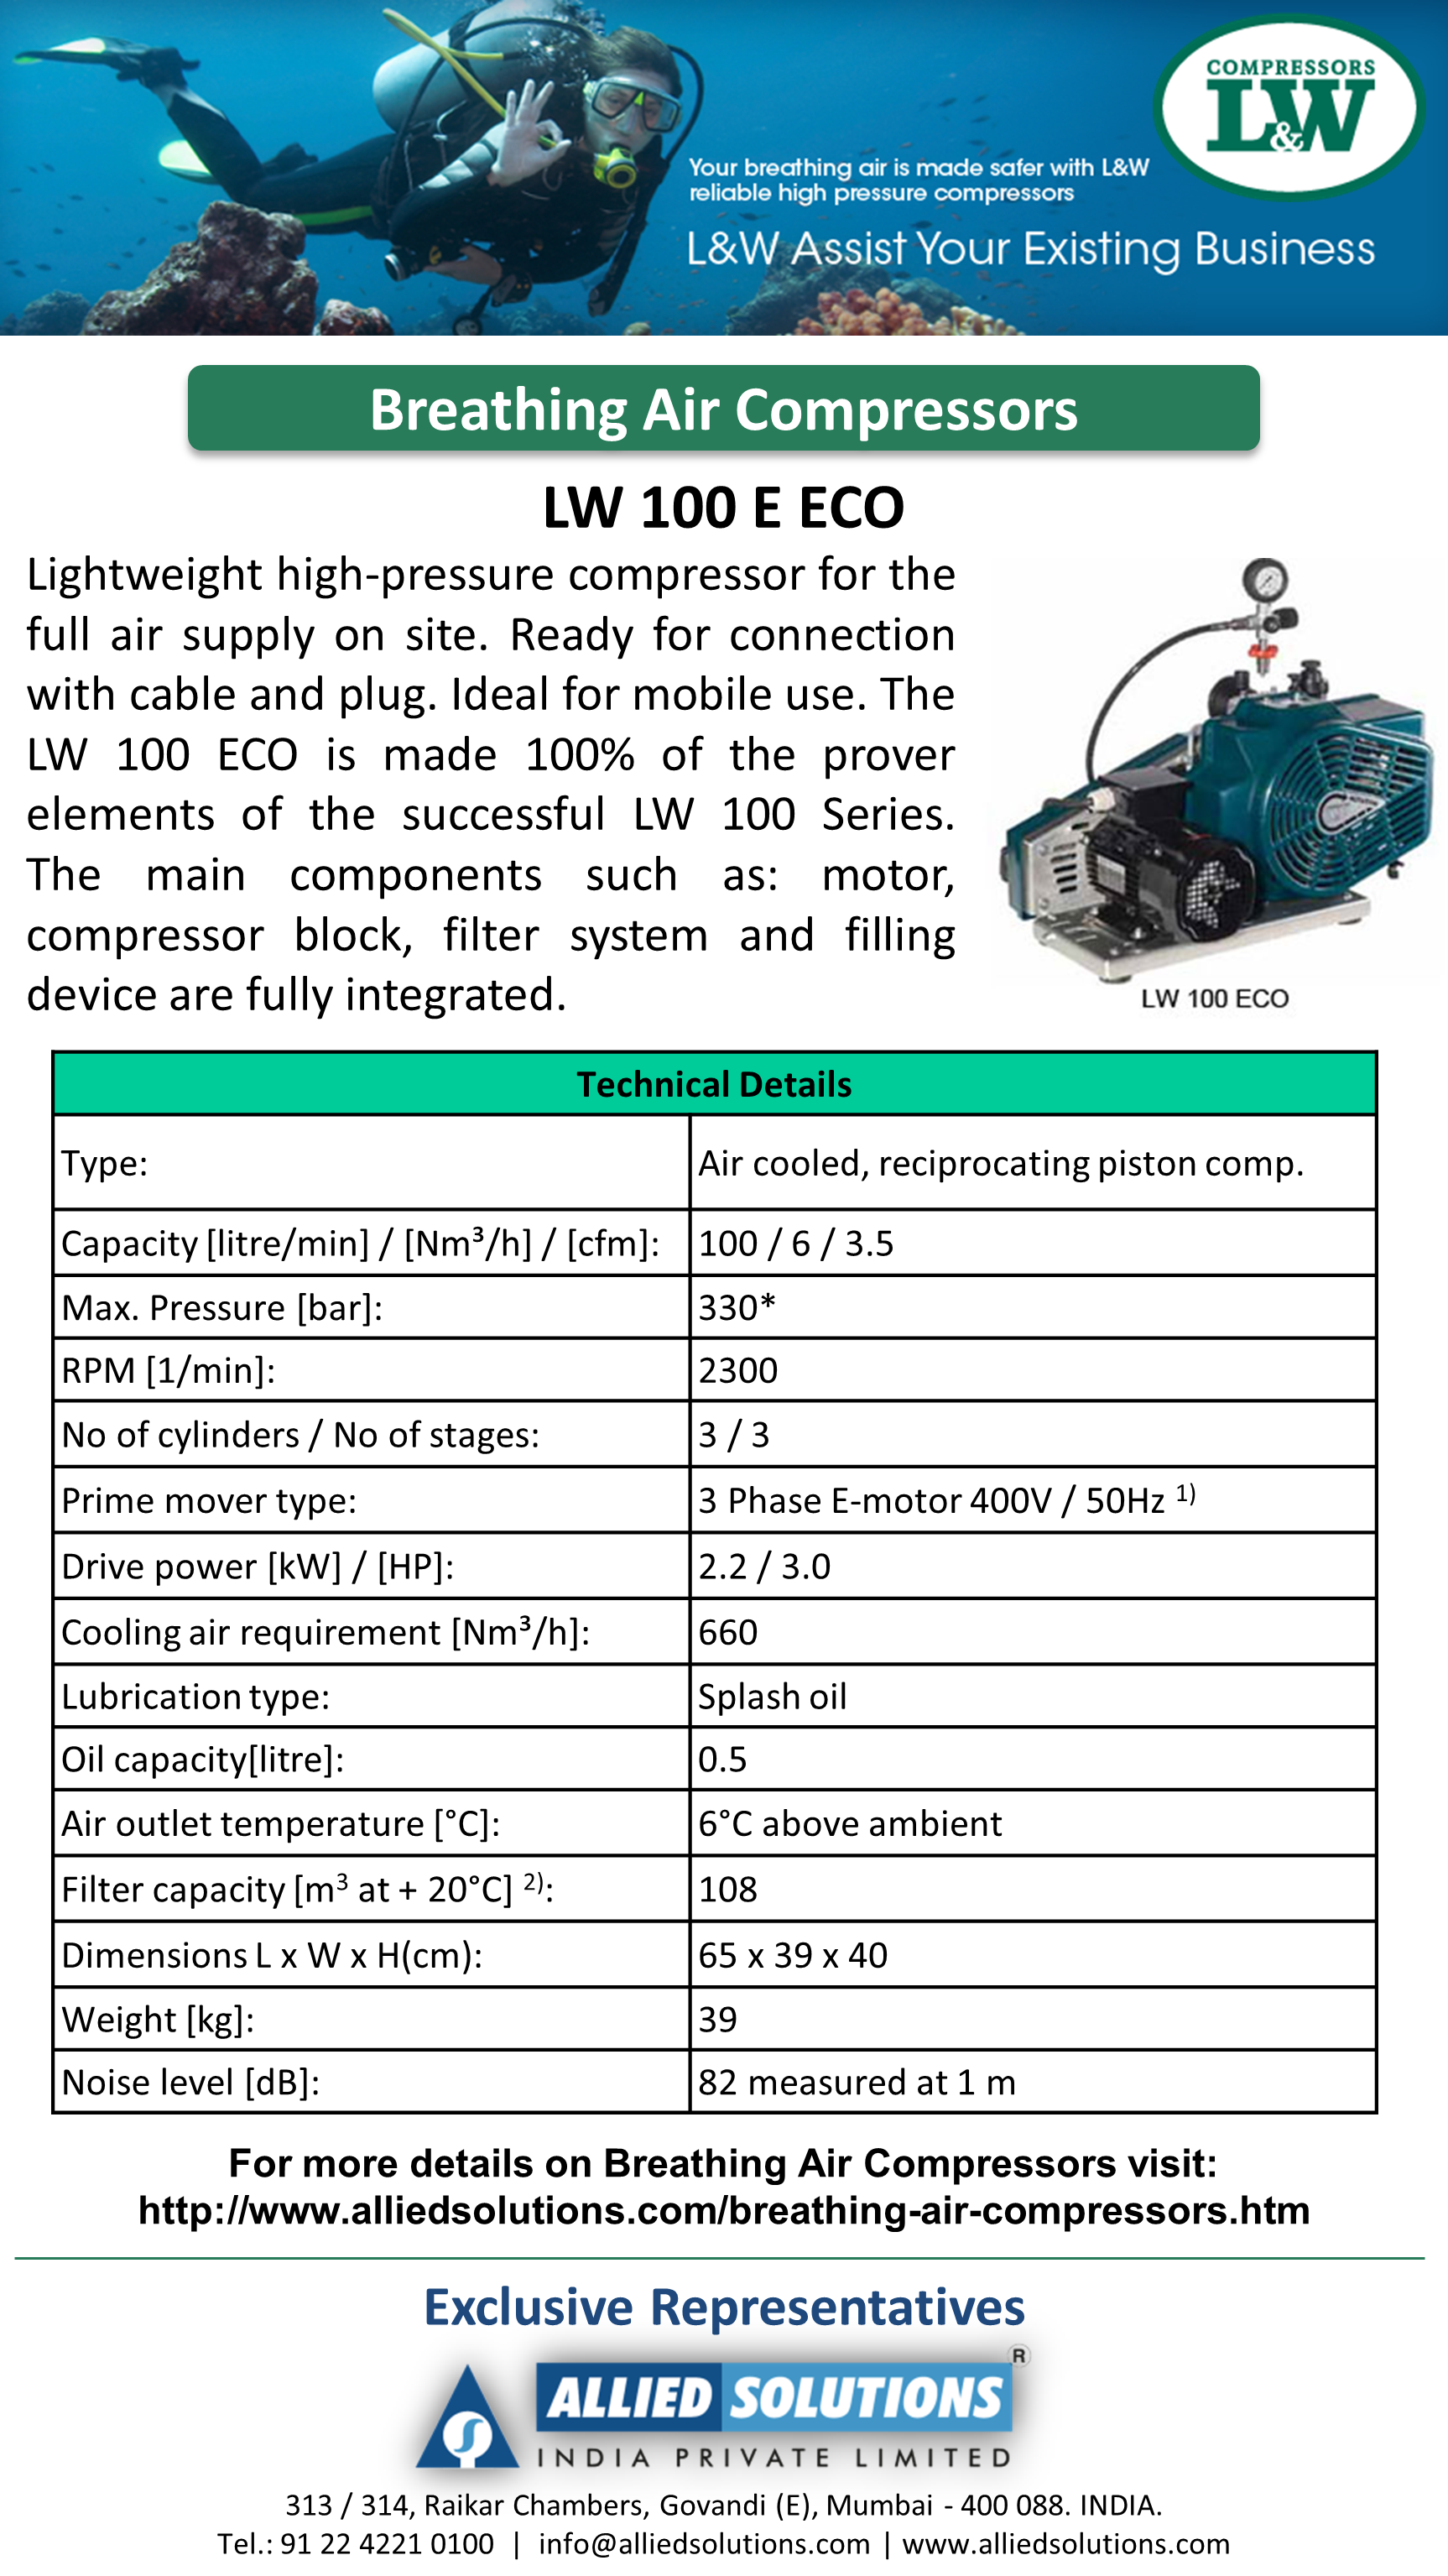 LnW Breathing Air Compressors LW 100 E ECO Allied